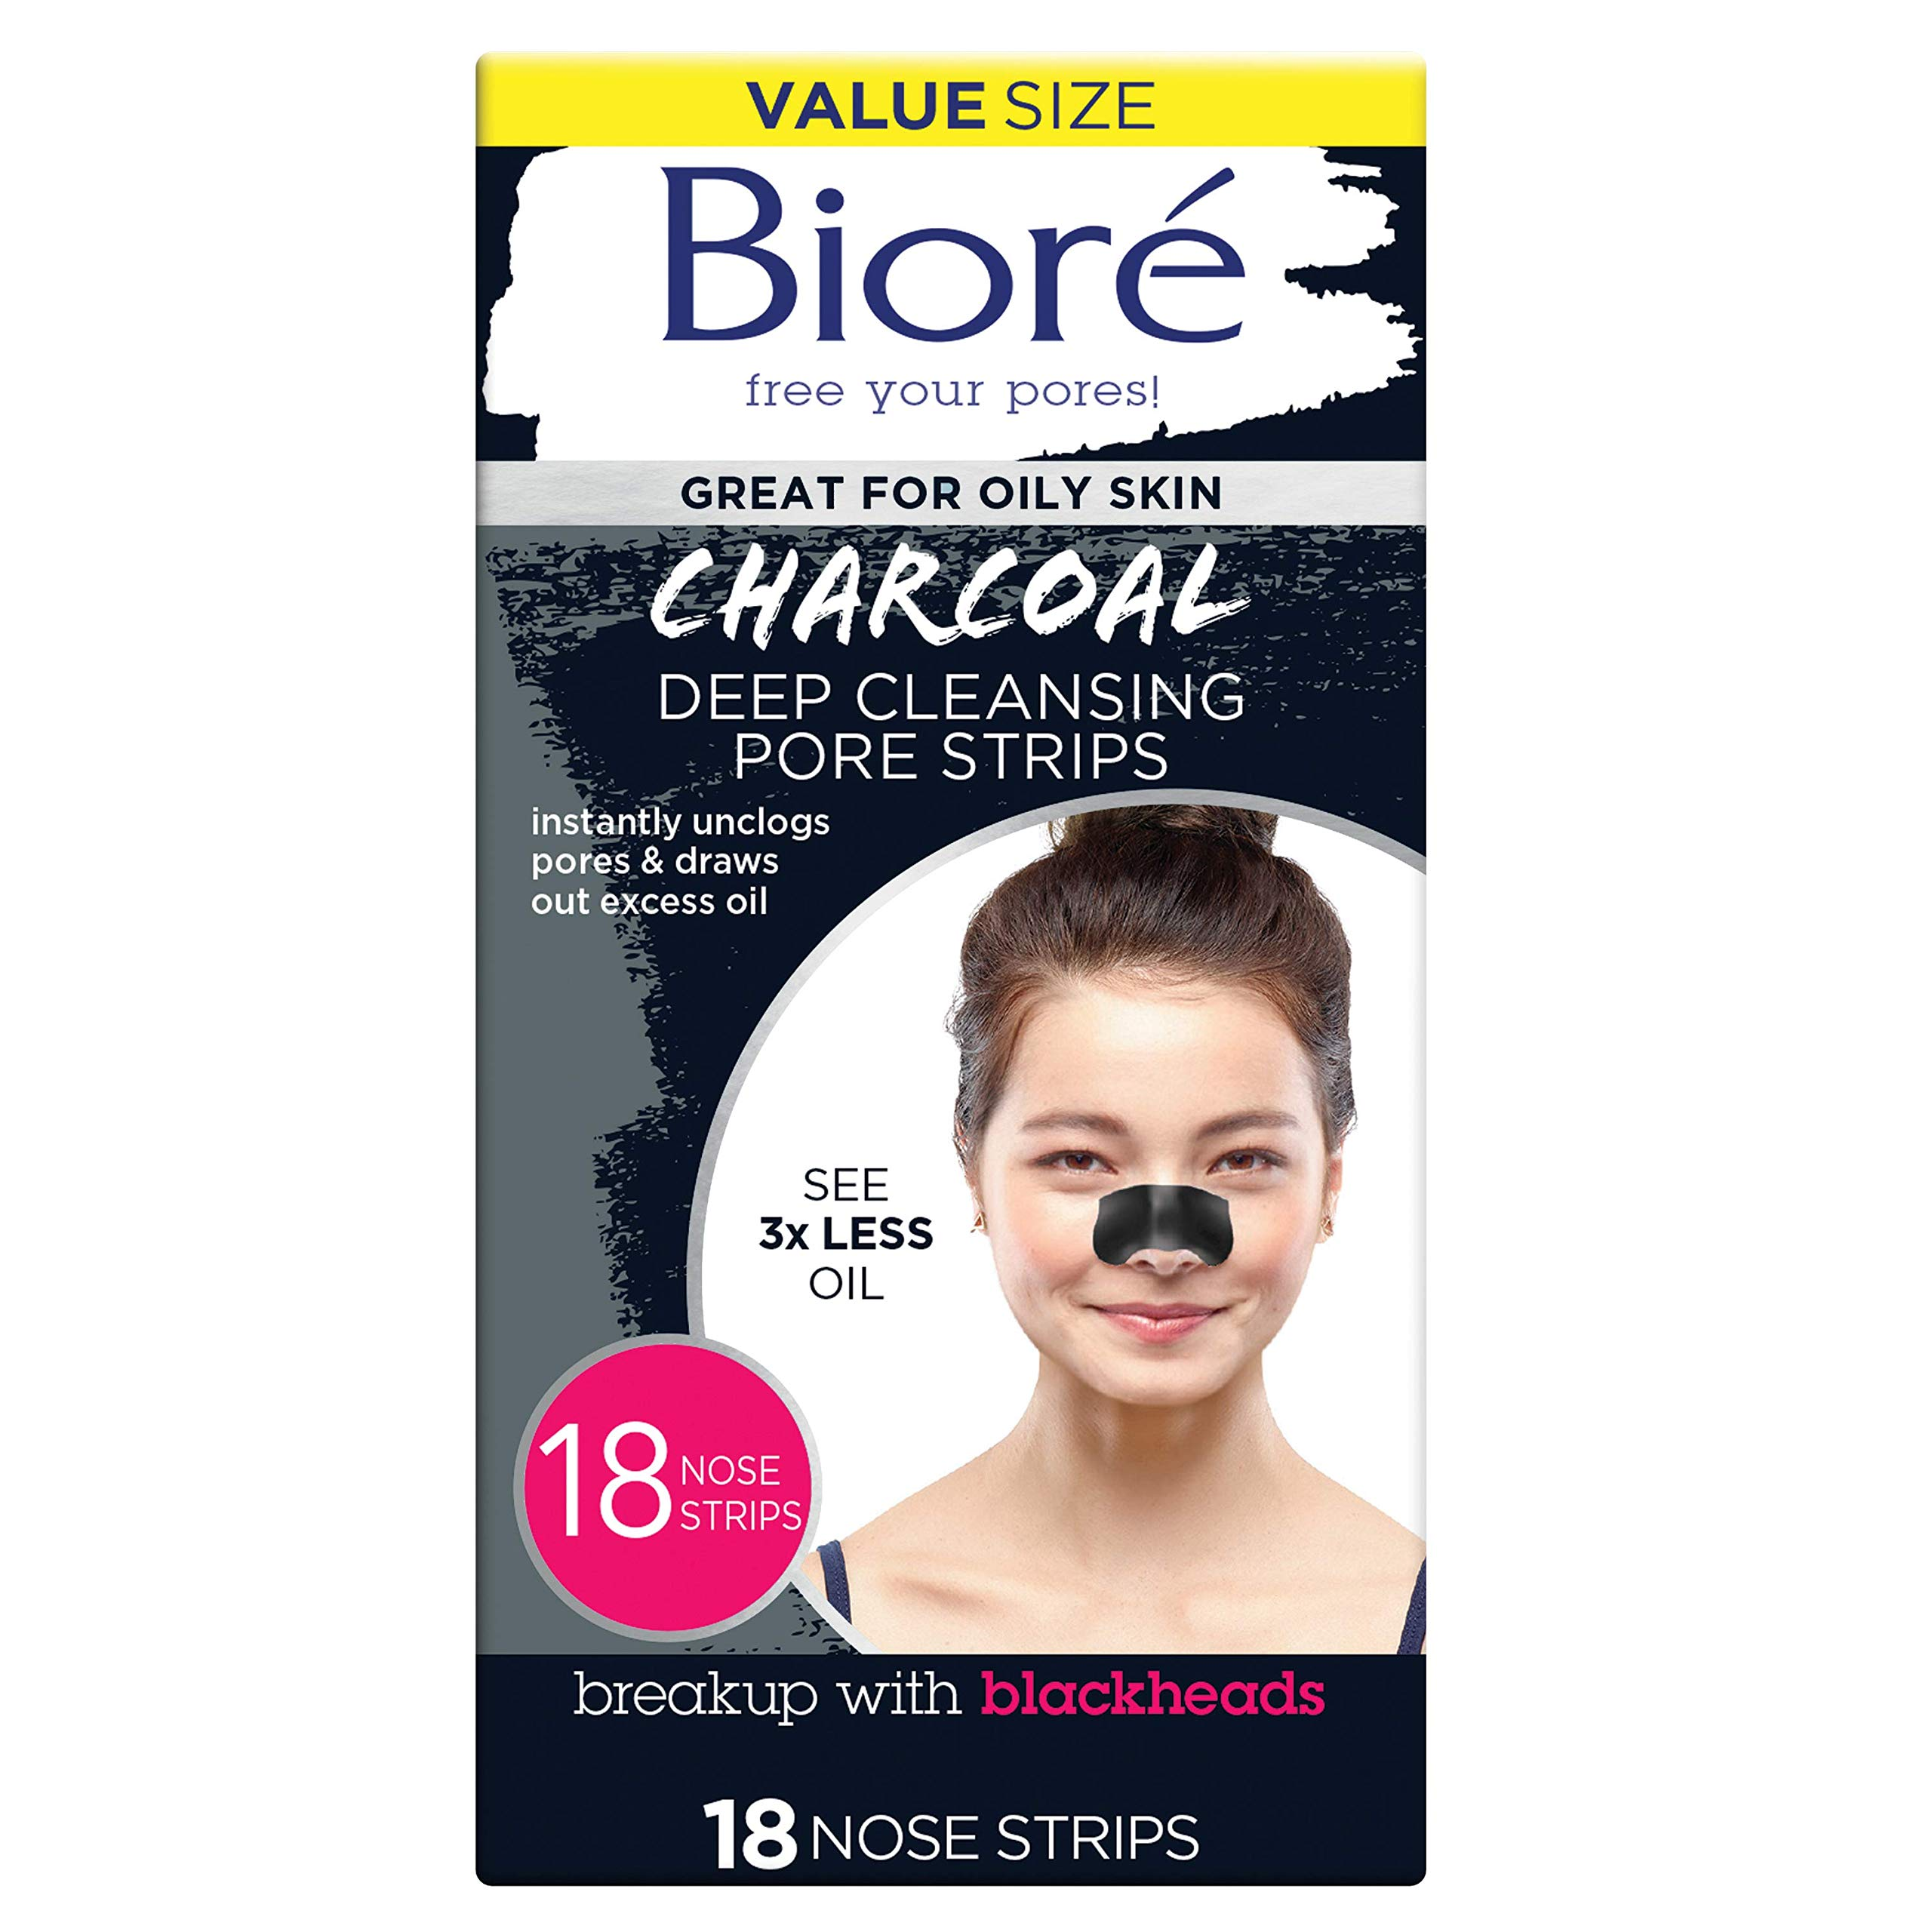 Bioré Blackhead Removing and Pore Unclogging Deep Cleansing Pore Strip with Natural Charcoal, 18 Count by Bioré